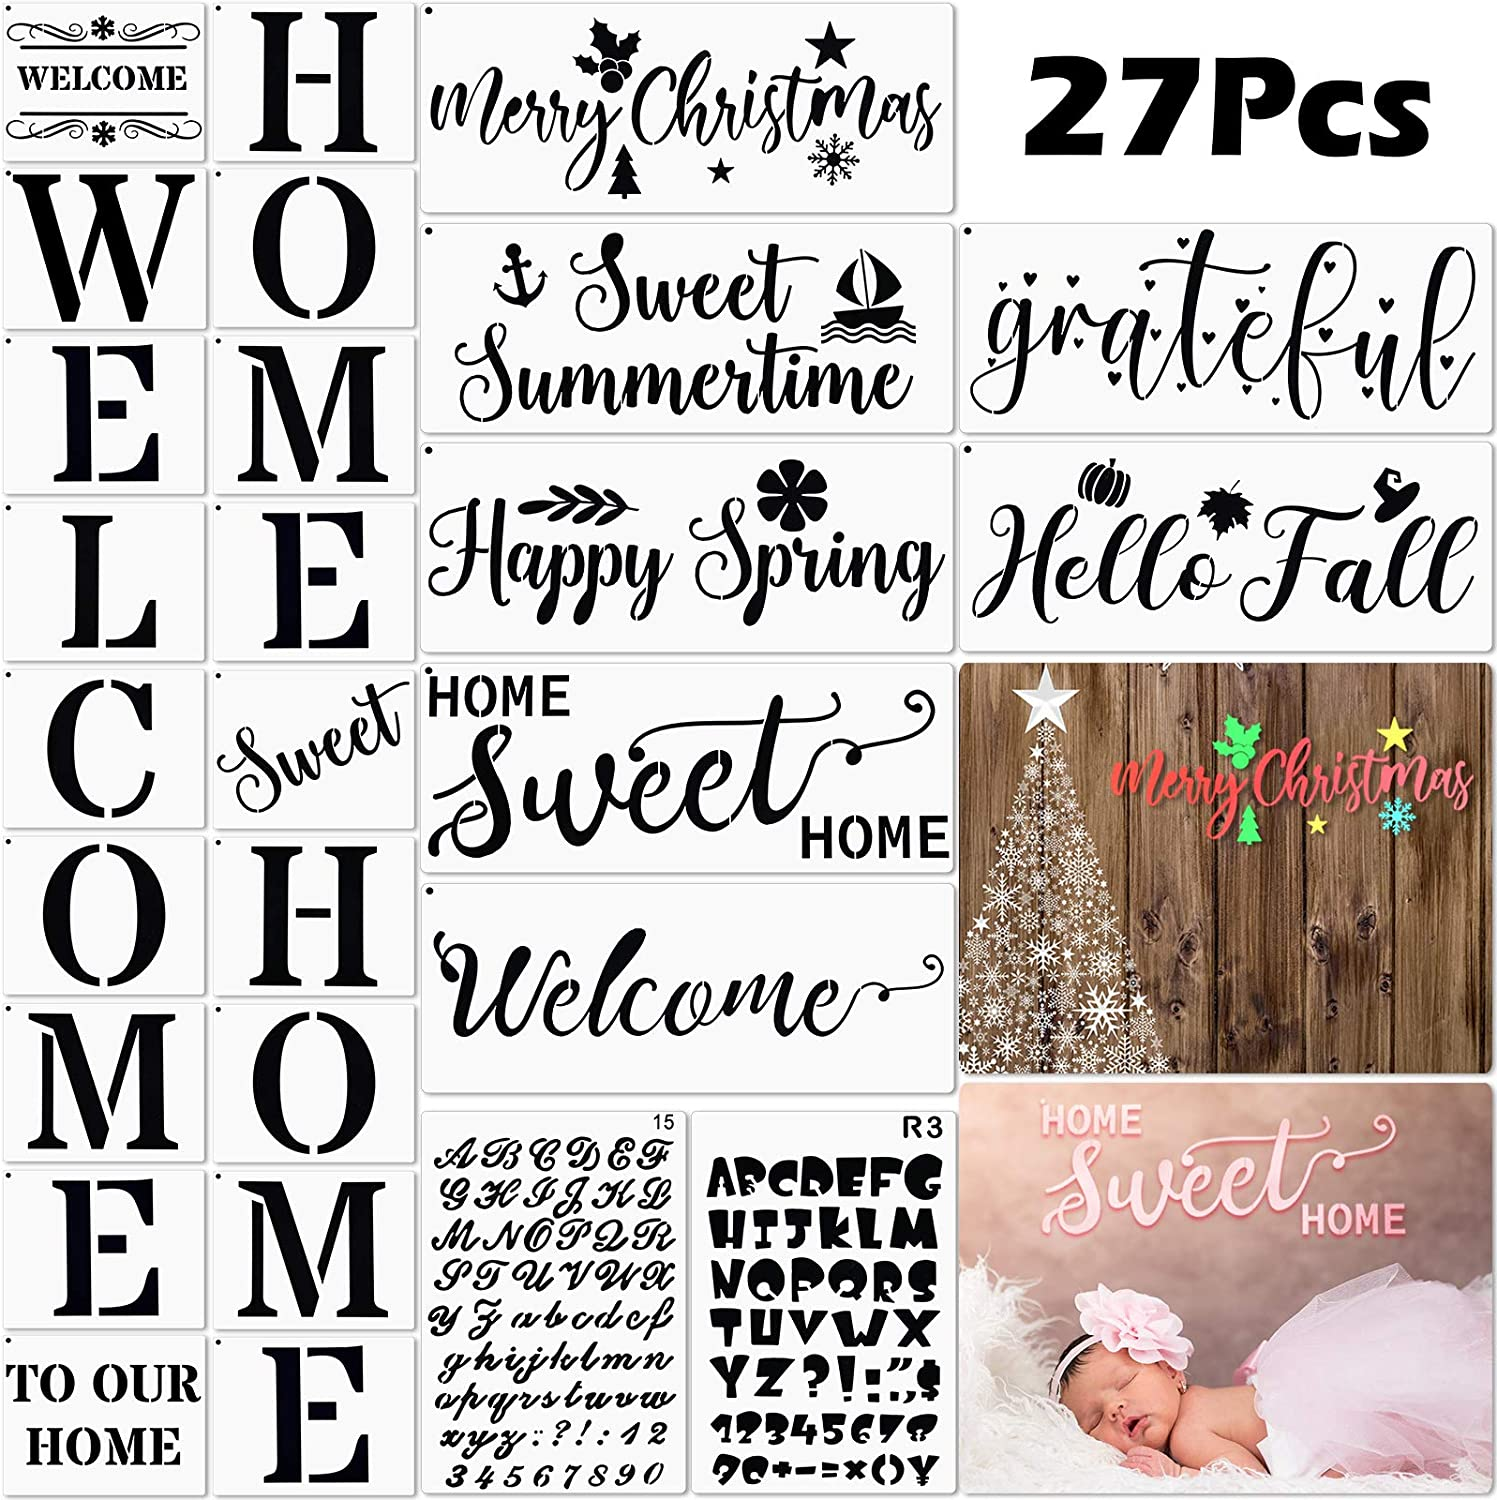 27 Pieces Christmas Stencil Painting Wood Welcome Home Stencil Kit Large Welcome Sign Stencil Sweet Home Reusable Template Seasonal Letter Stencils for Painting on Wood Wall Create Beautiful Wood Sign